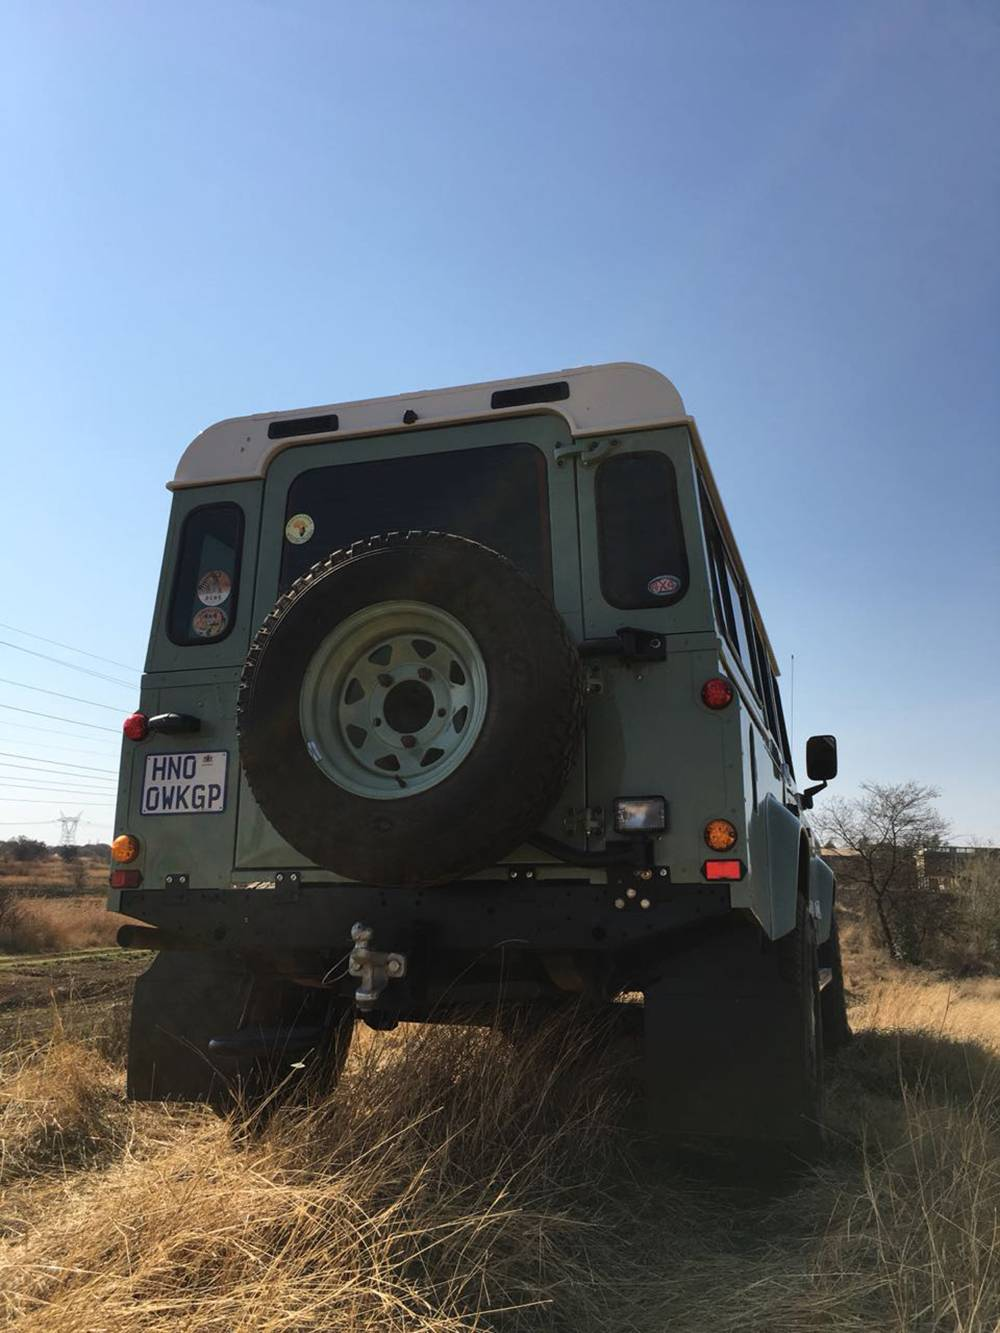 Landrover Defender 110 CSW 5 a8